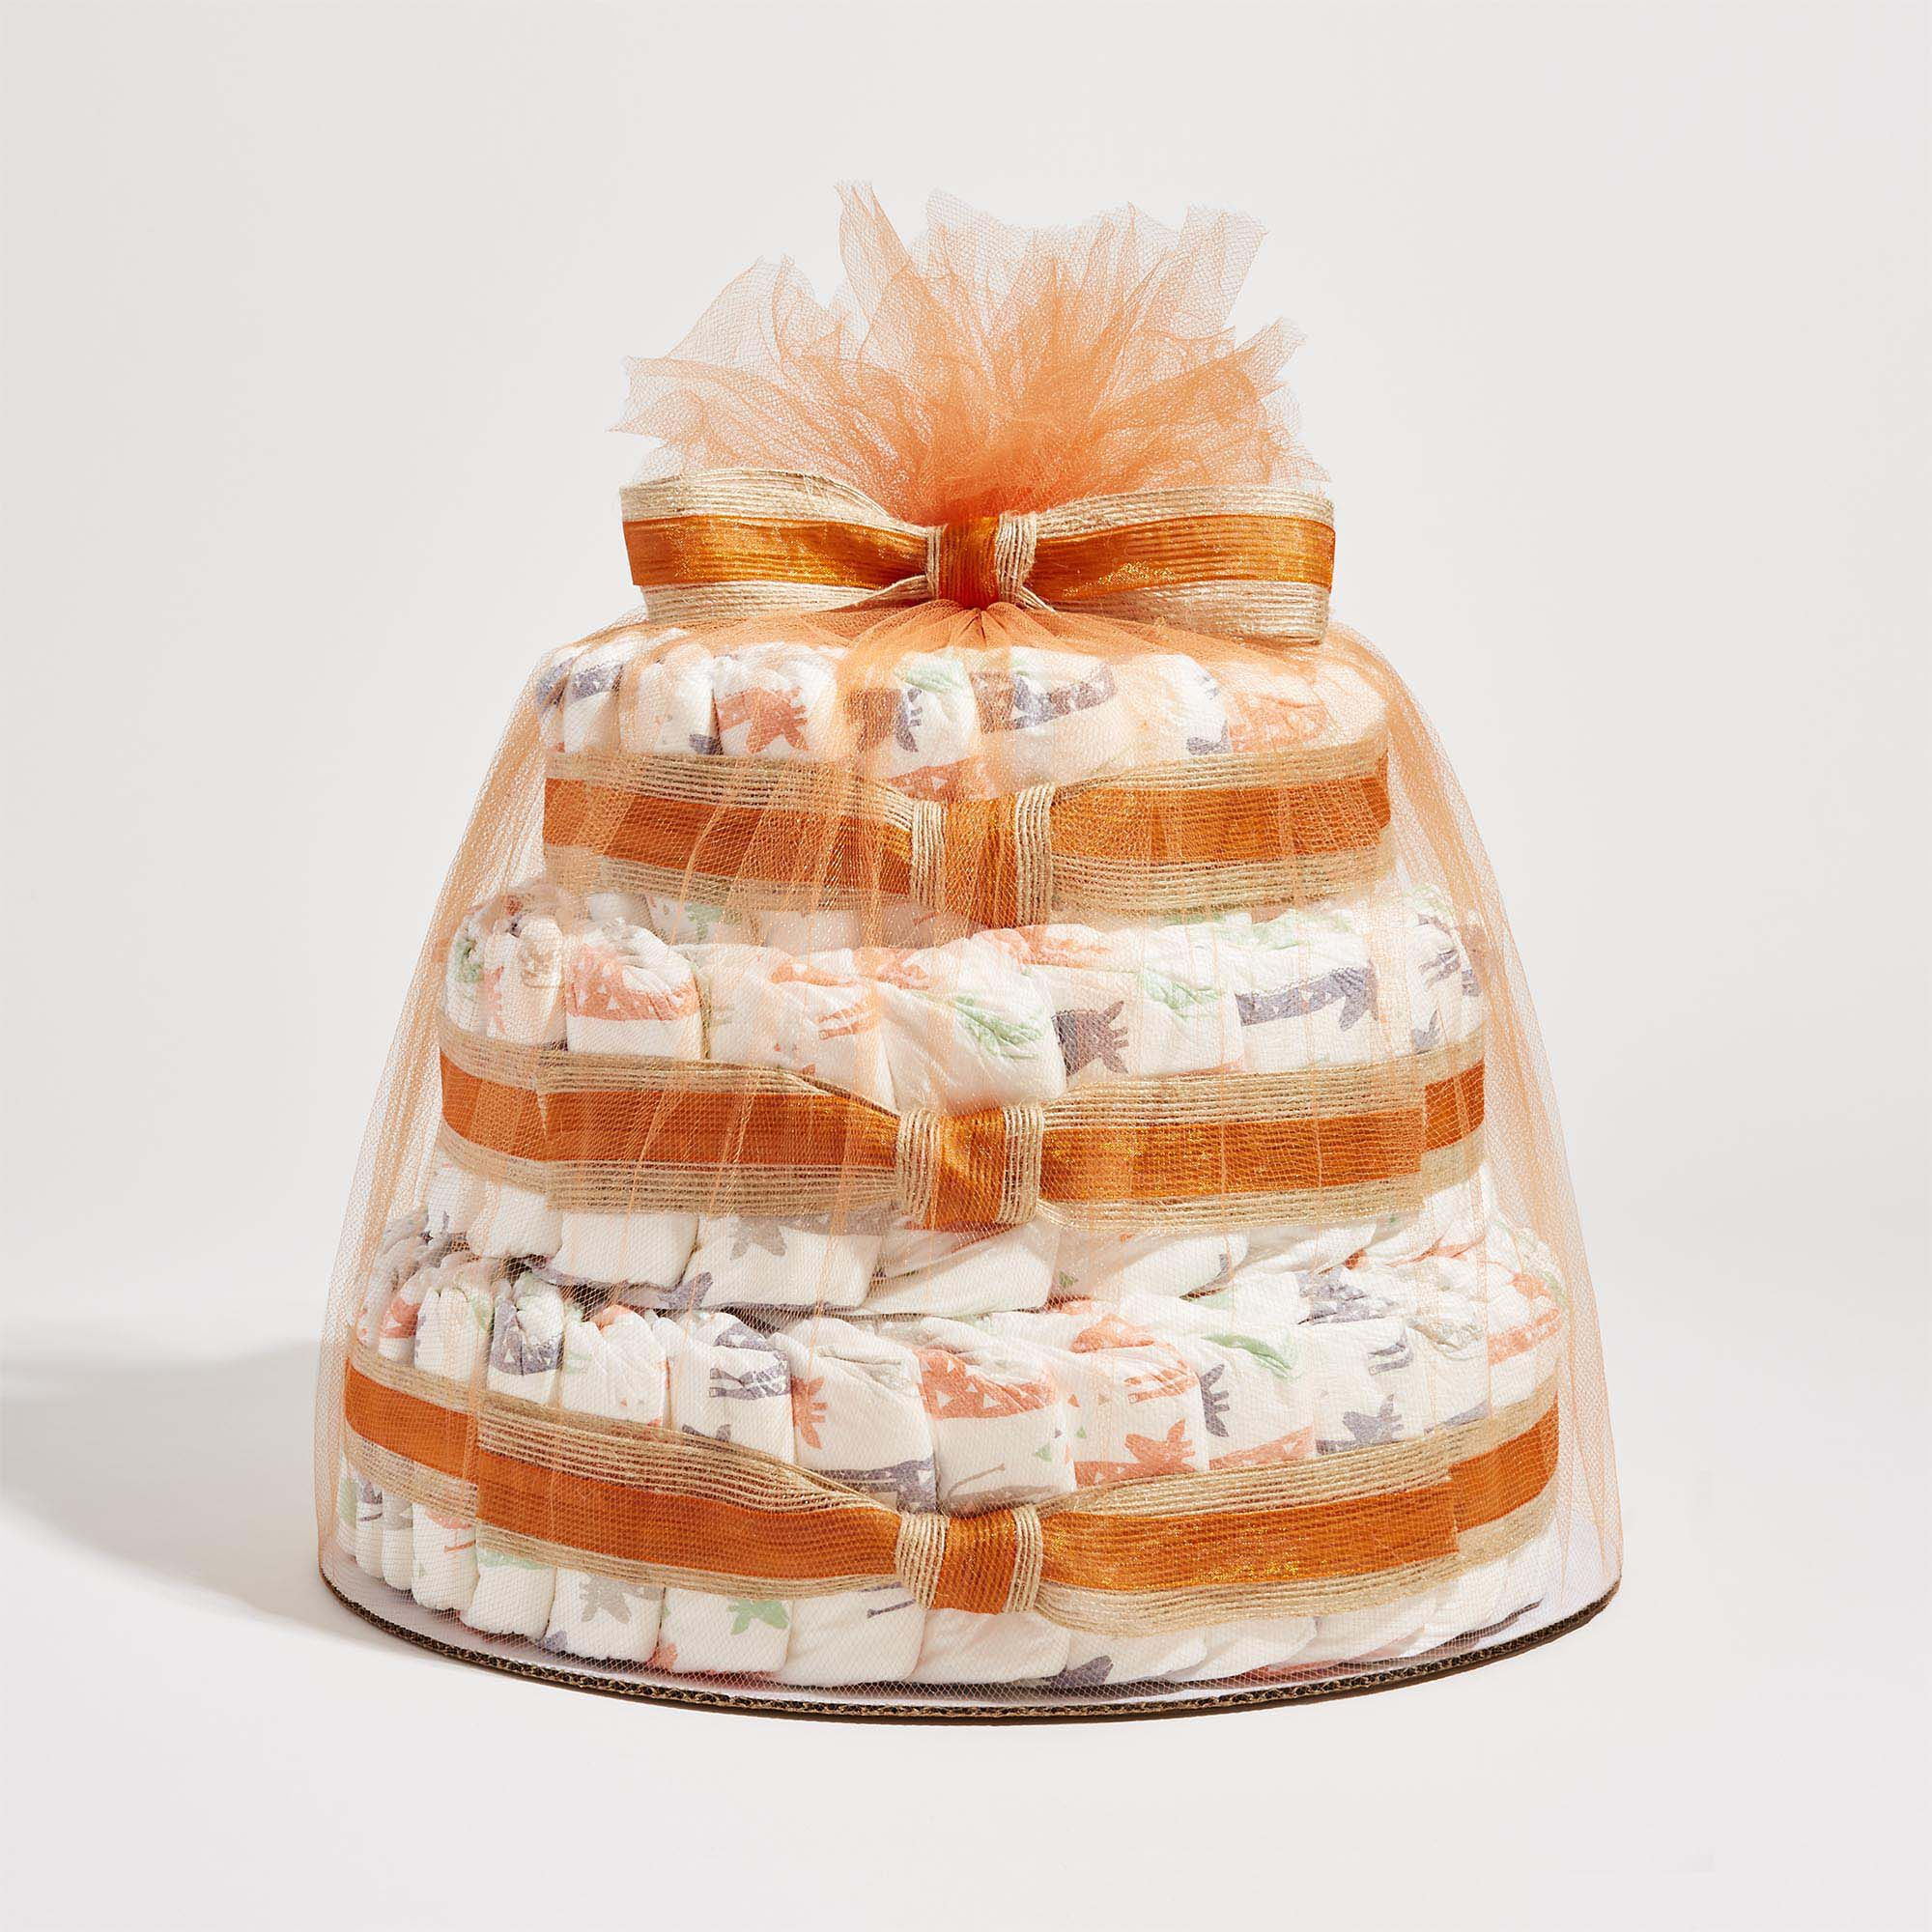 The Honest Company Diaper Cake